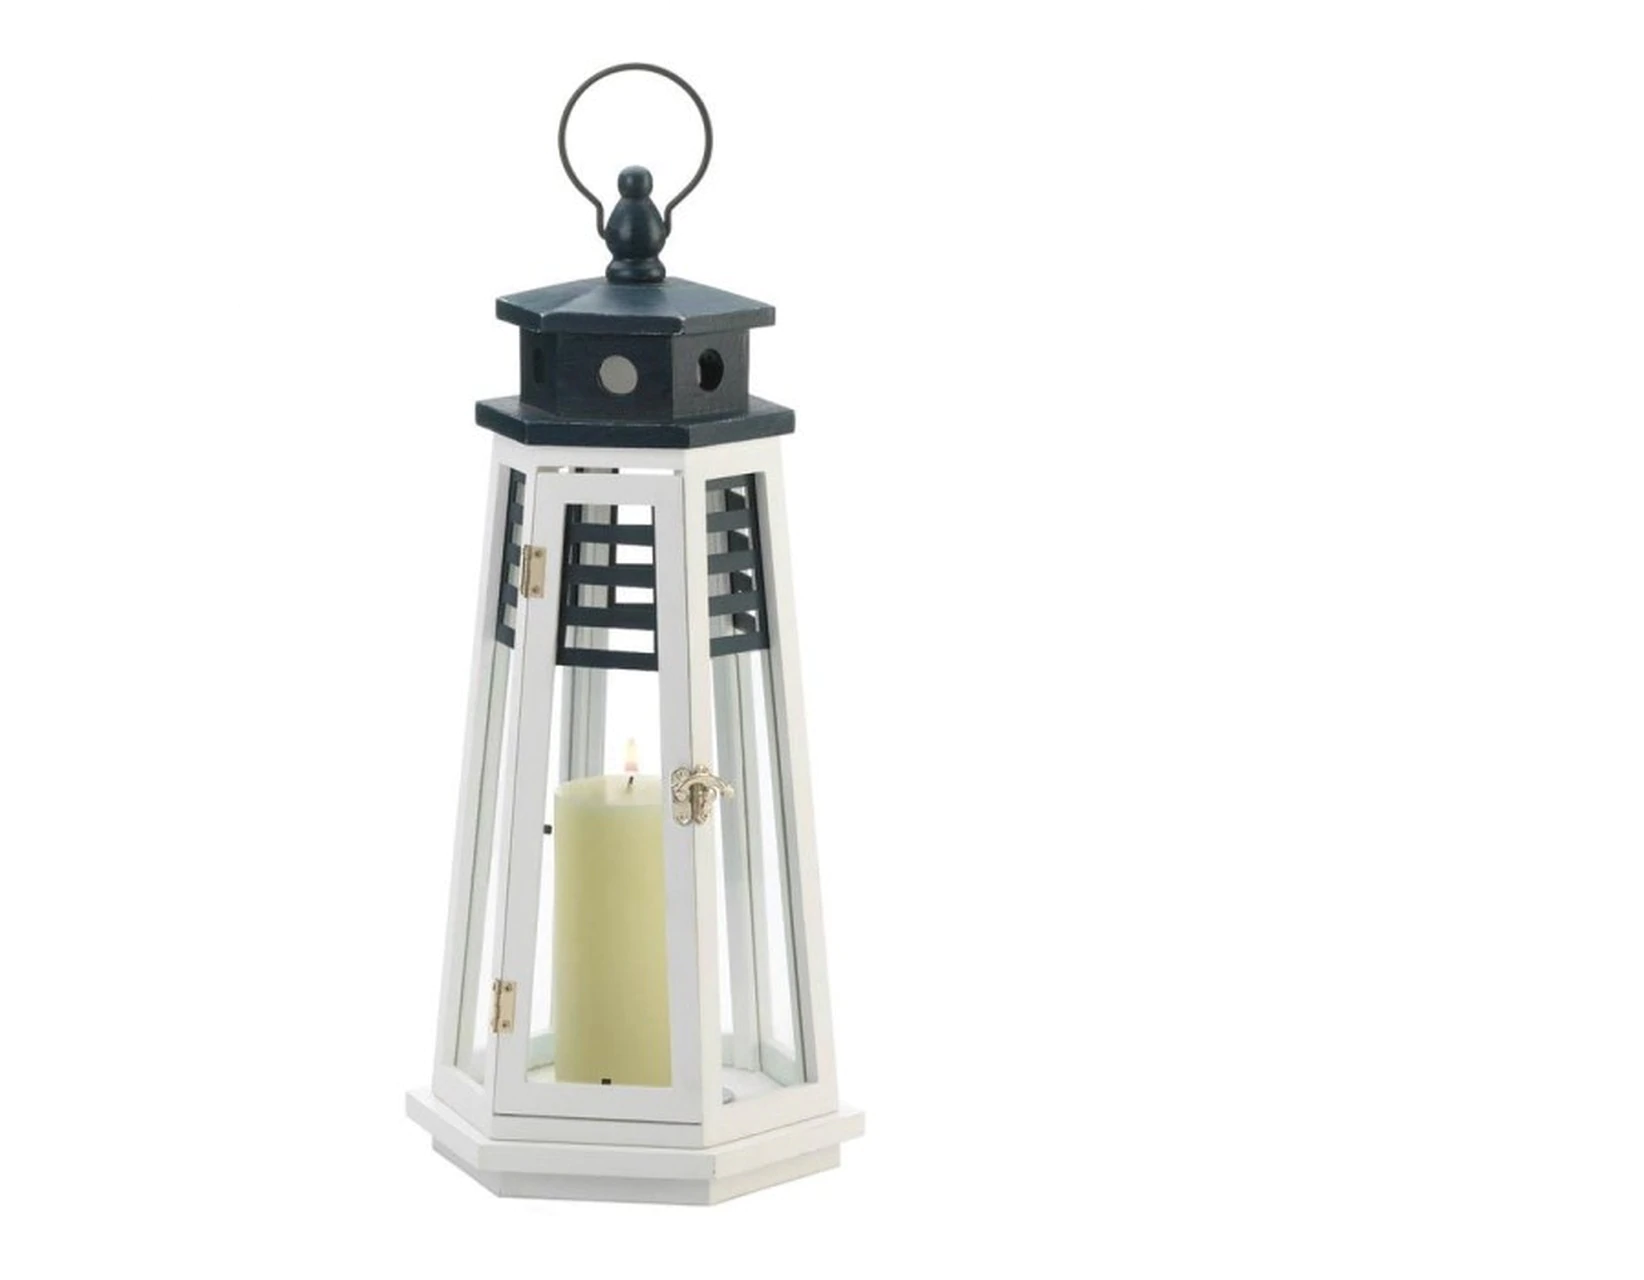 Navy Blue and White Wood Lighthouse Candle Lantern - 19 inches